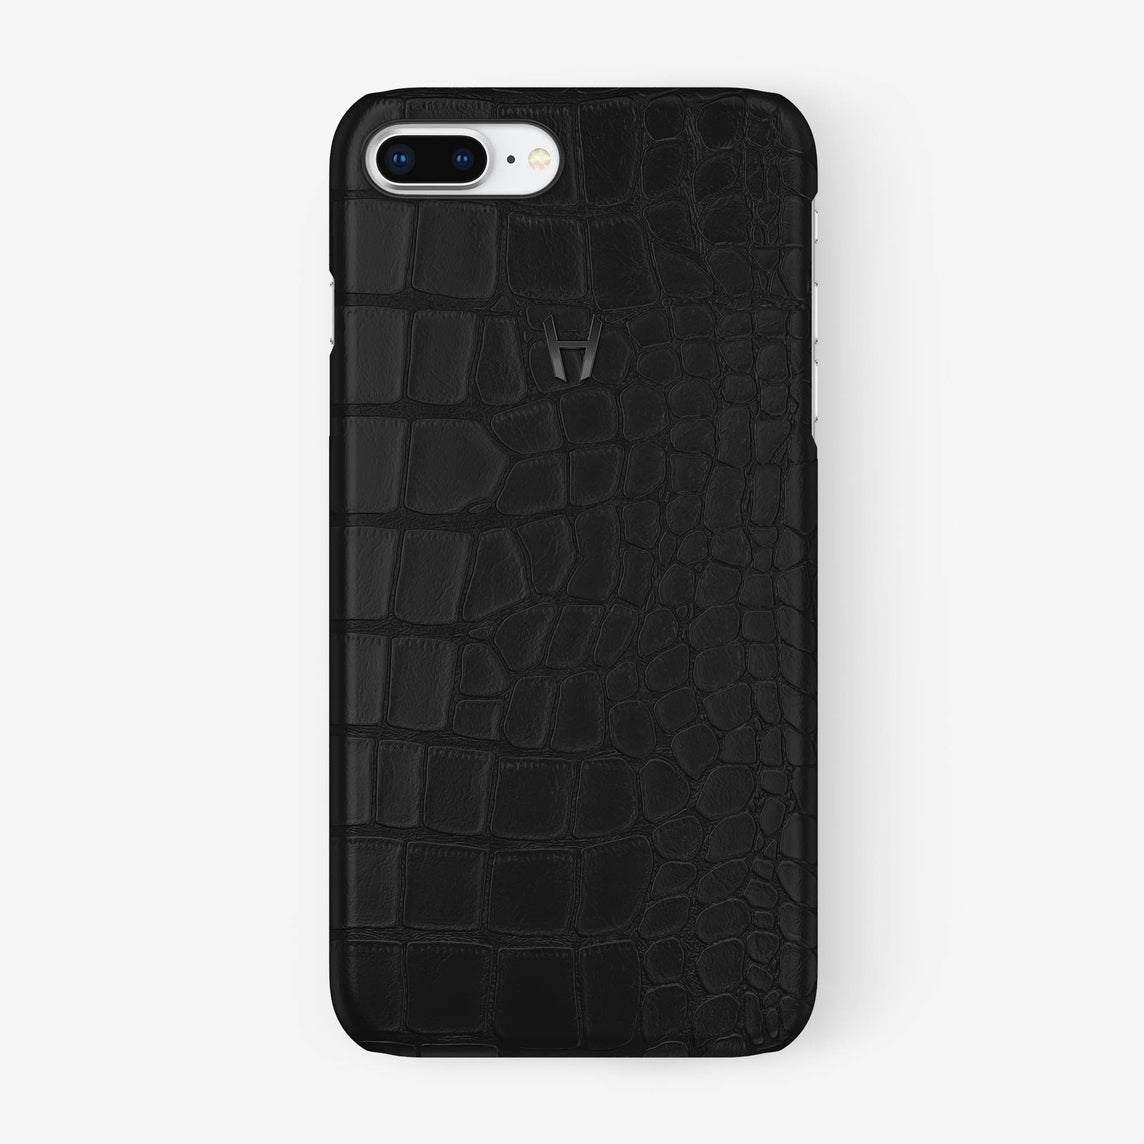 Alligator Case iPhone 7/8 Plus | Phantom Black - Black